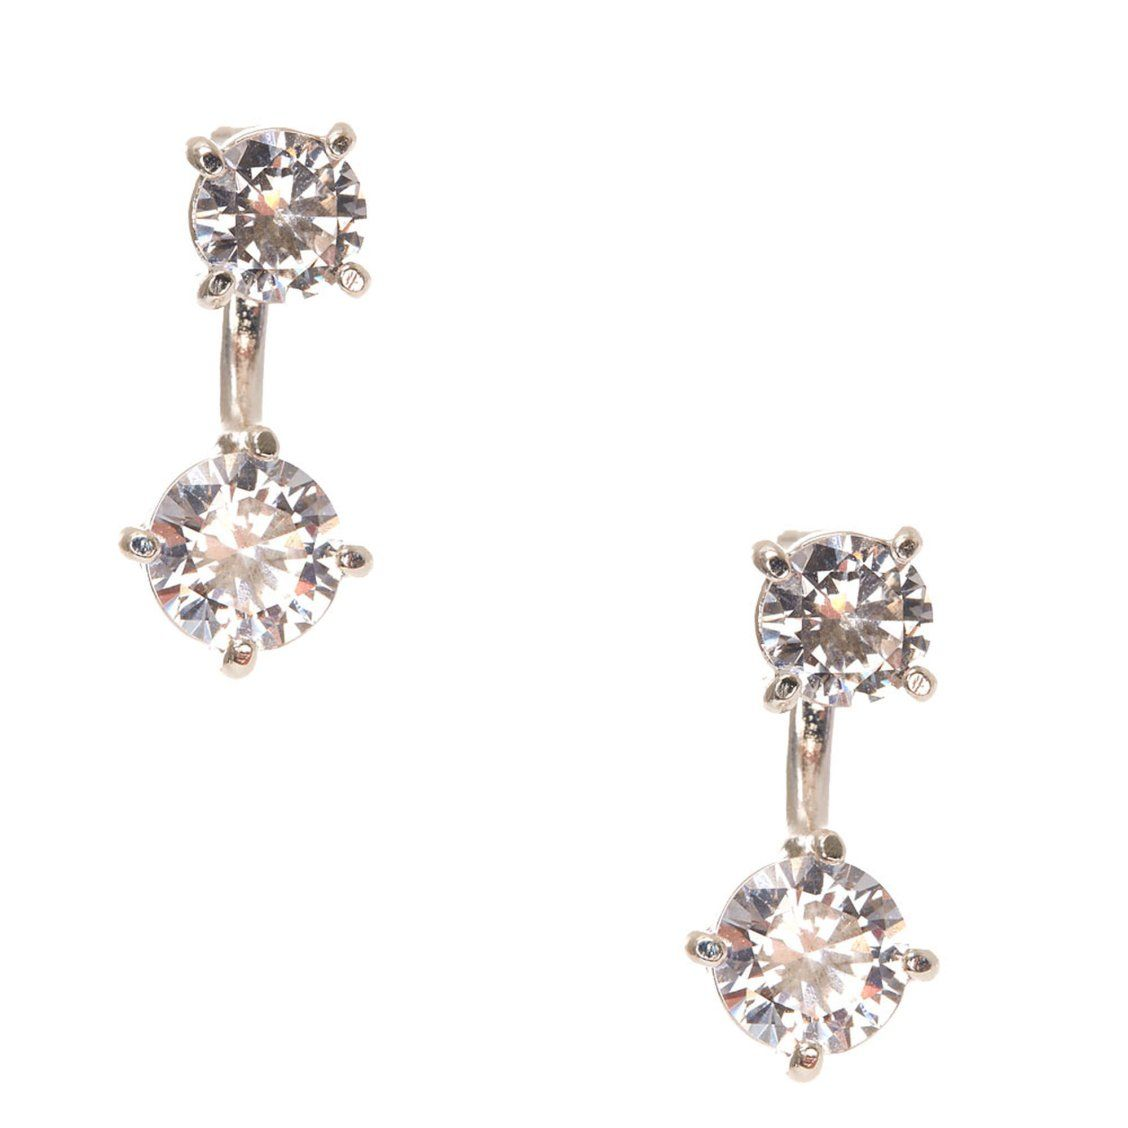 e33f9bfdd Cubic Zirconia Front and Back Drop Earrings | Double up on sparkly cubic  zirconia stud style with this pair of earrings. These Cubic Zirconia Front  and Back ...